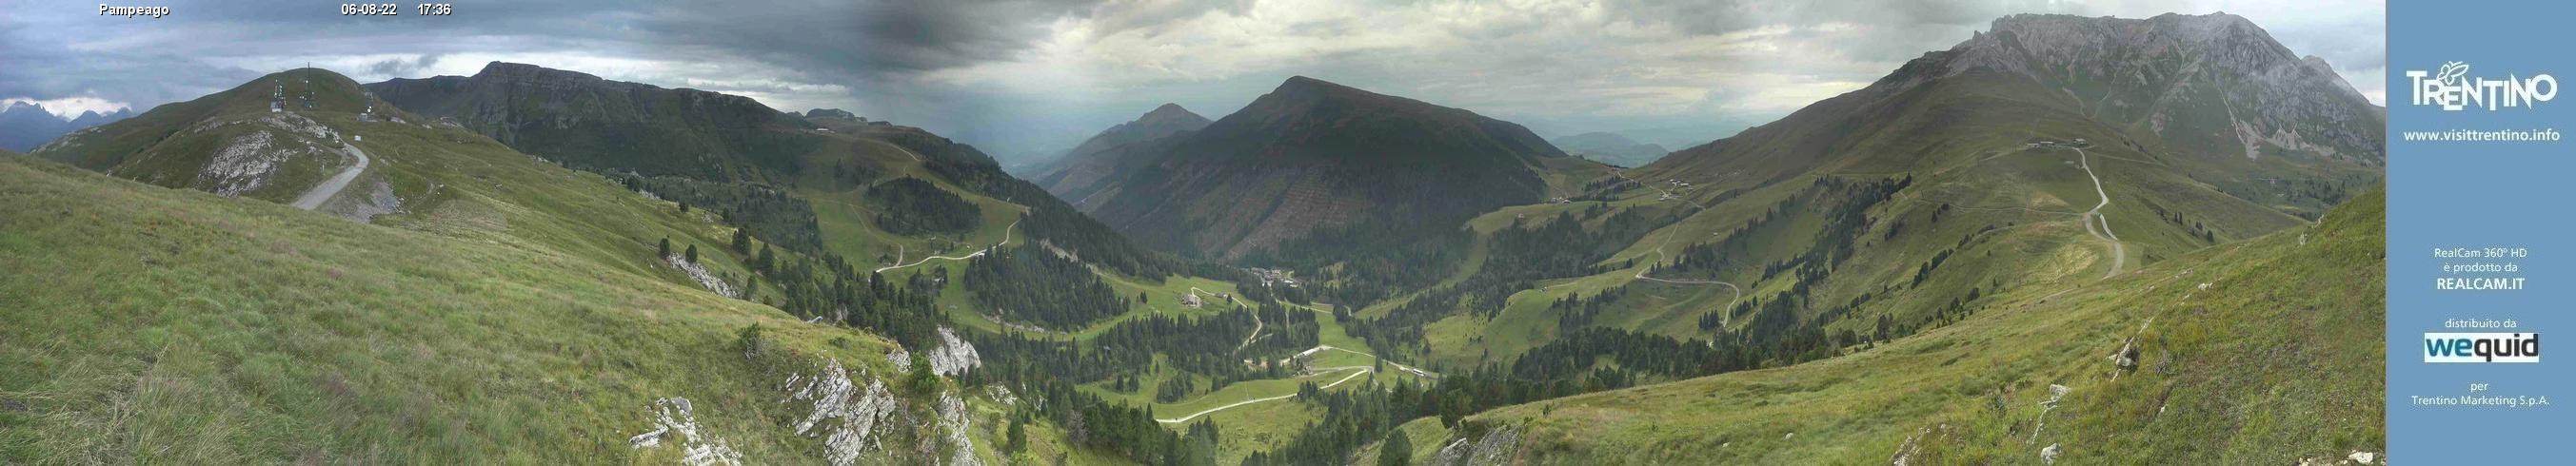 Webcam <br><span> panorama val di fiemme</span>